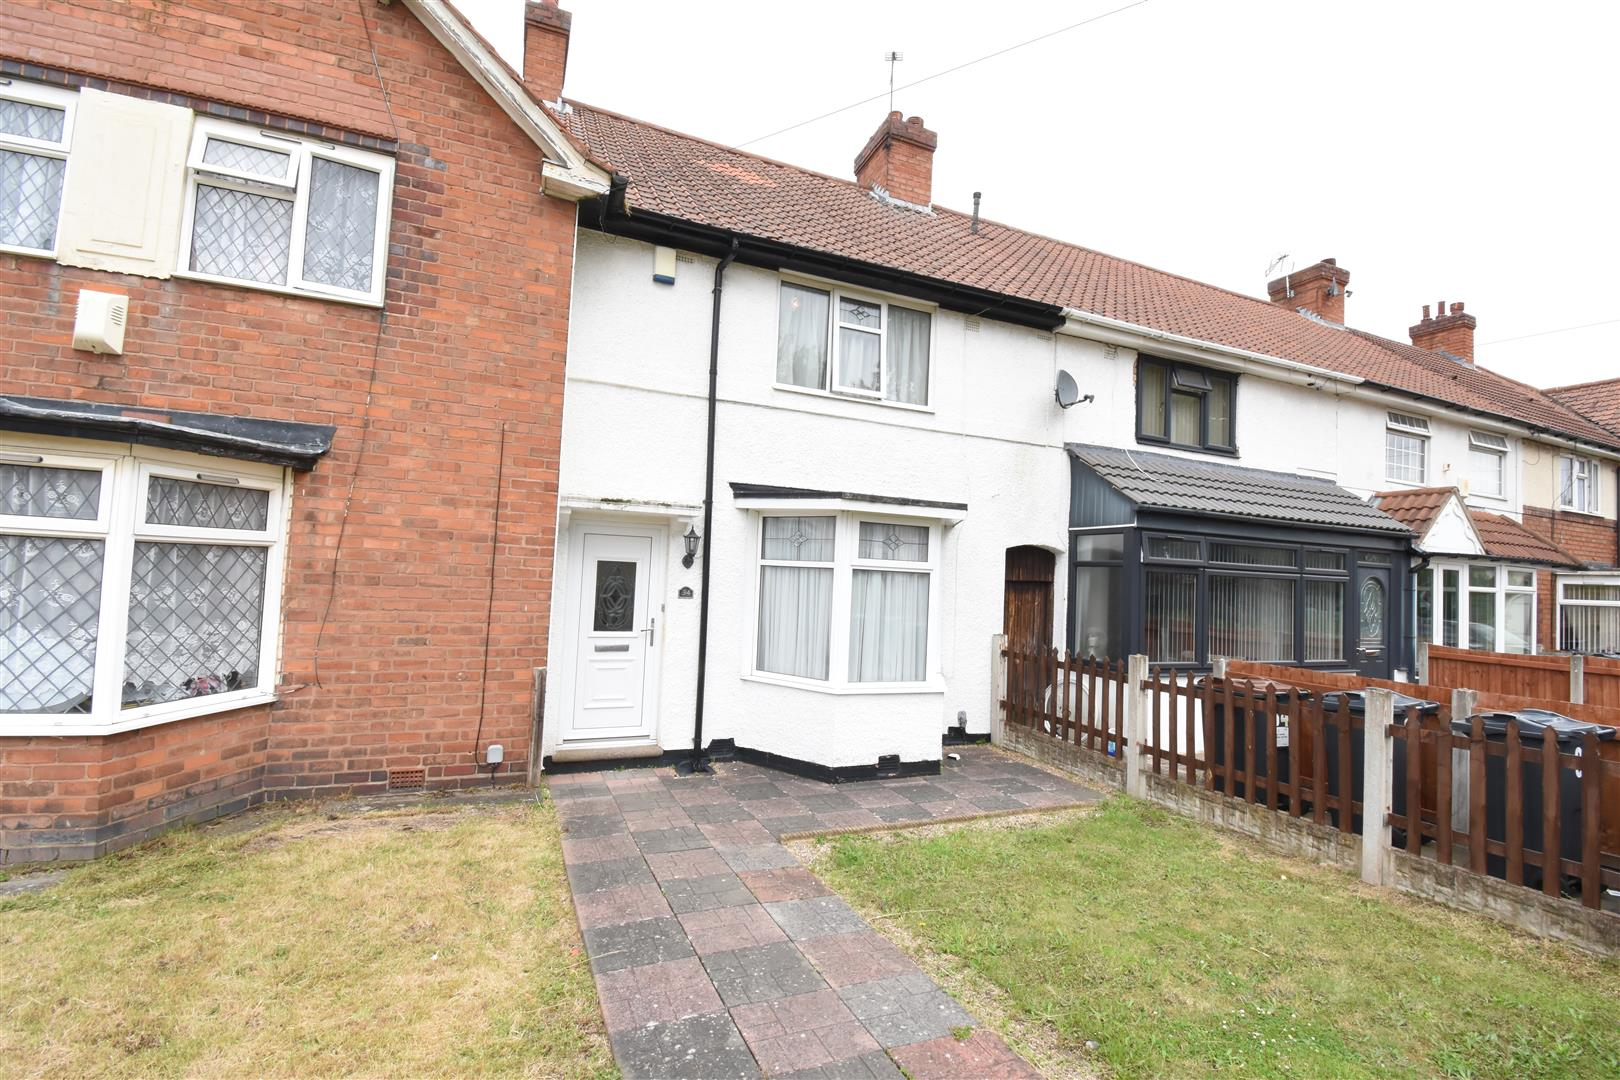 3 bed house for sale in Winnington Road, Ward End, B8